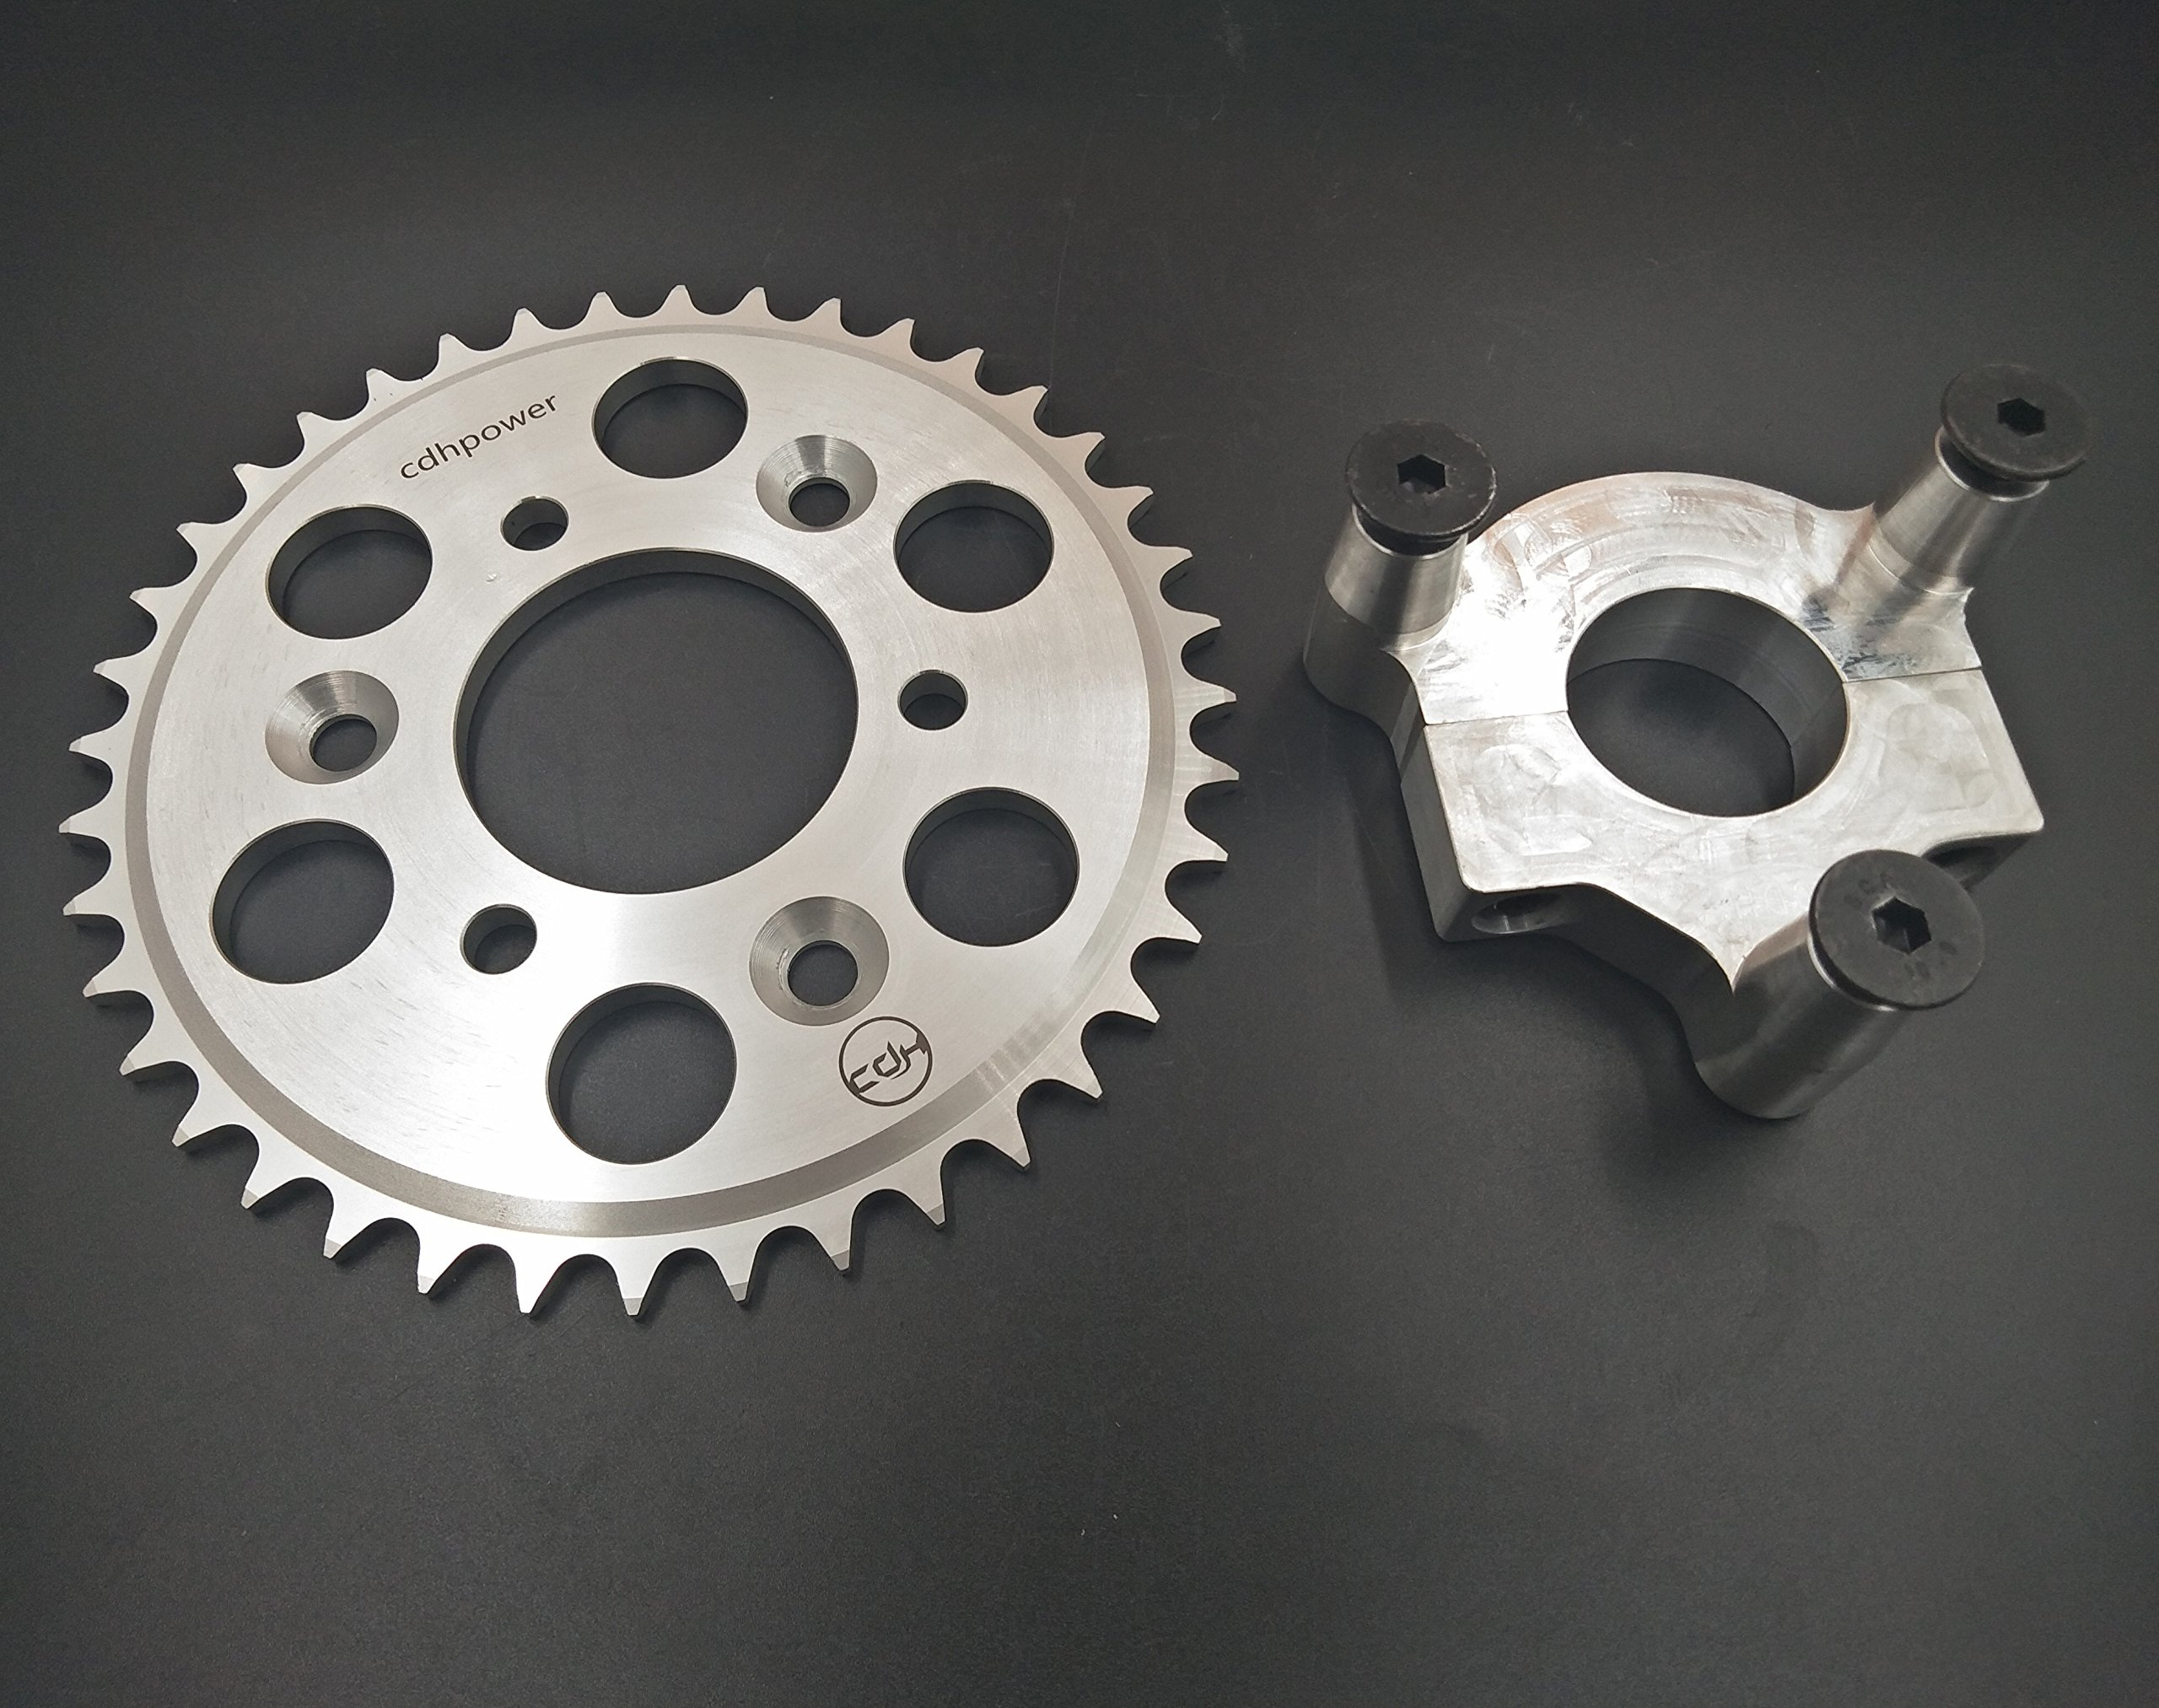 CDHPOWER Rear Hub Adapter 1.5'' and 40T sprocket for 2 stroke engine kit 48cc/66cc/80cc